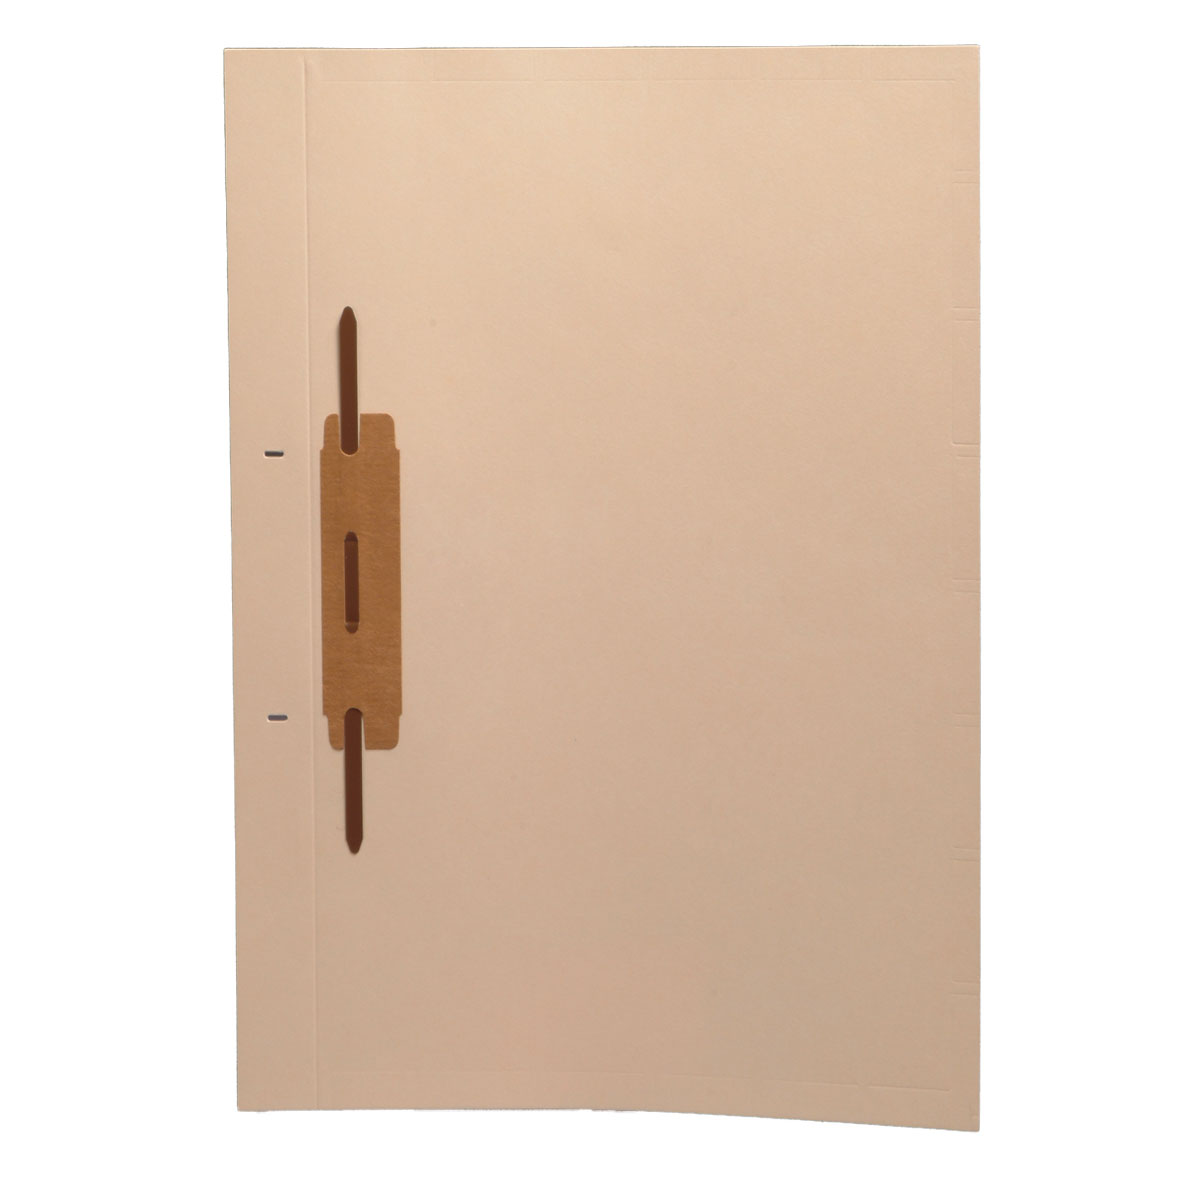 S-9052 - Blank Fileback Divider Sheets, Side Flap and Divider (Box of 100)